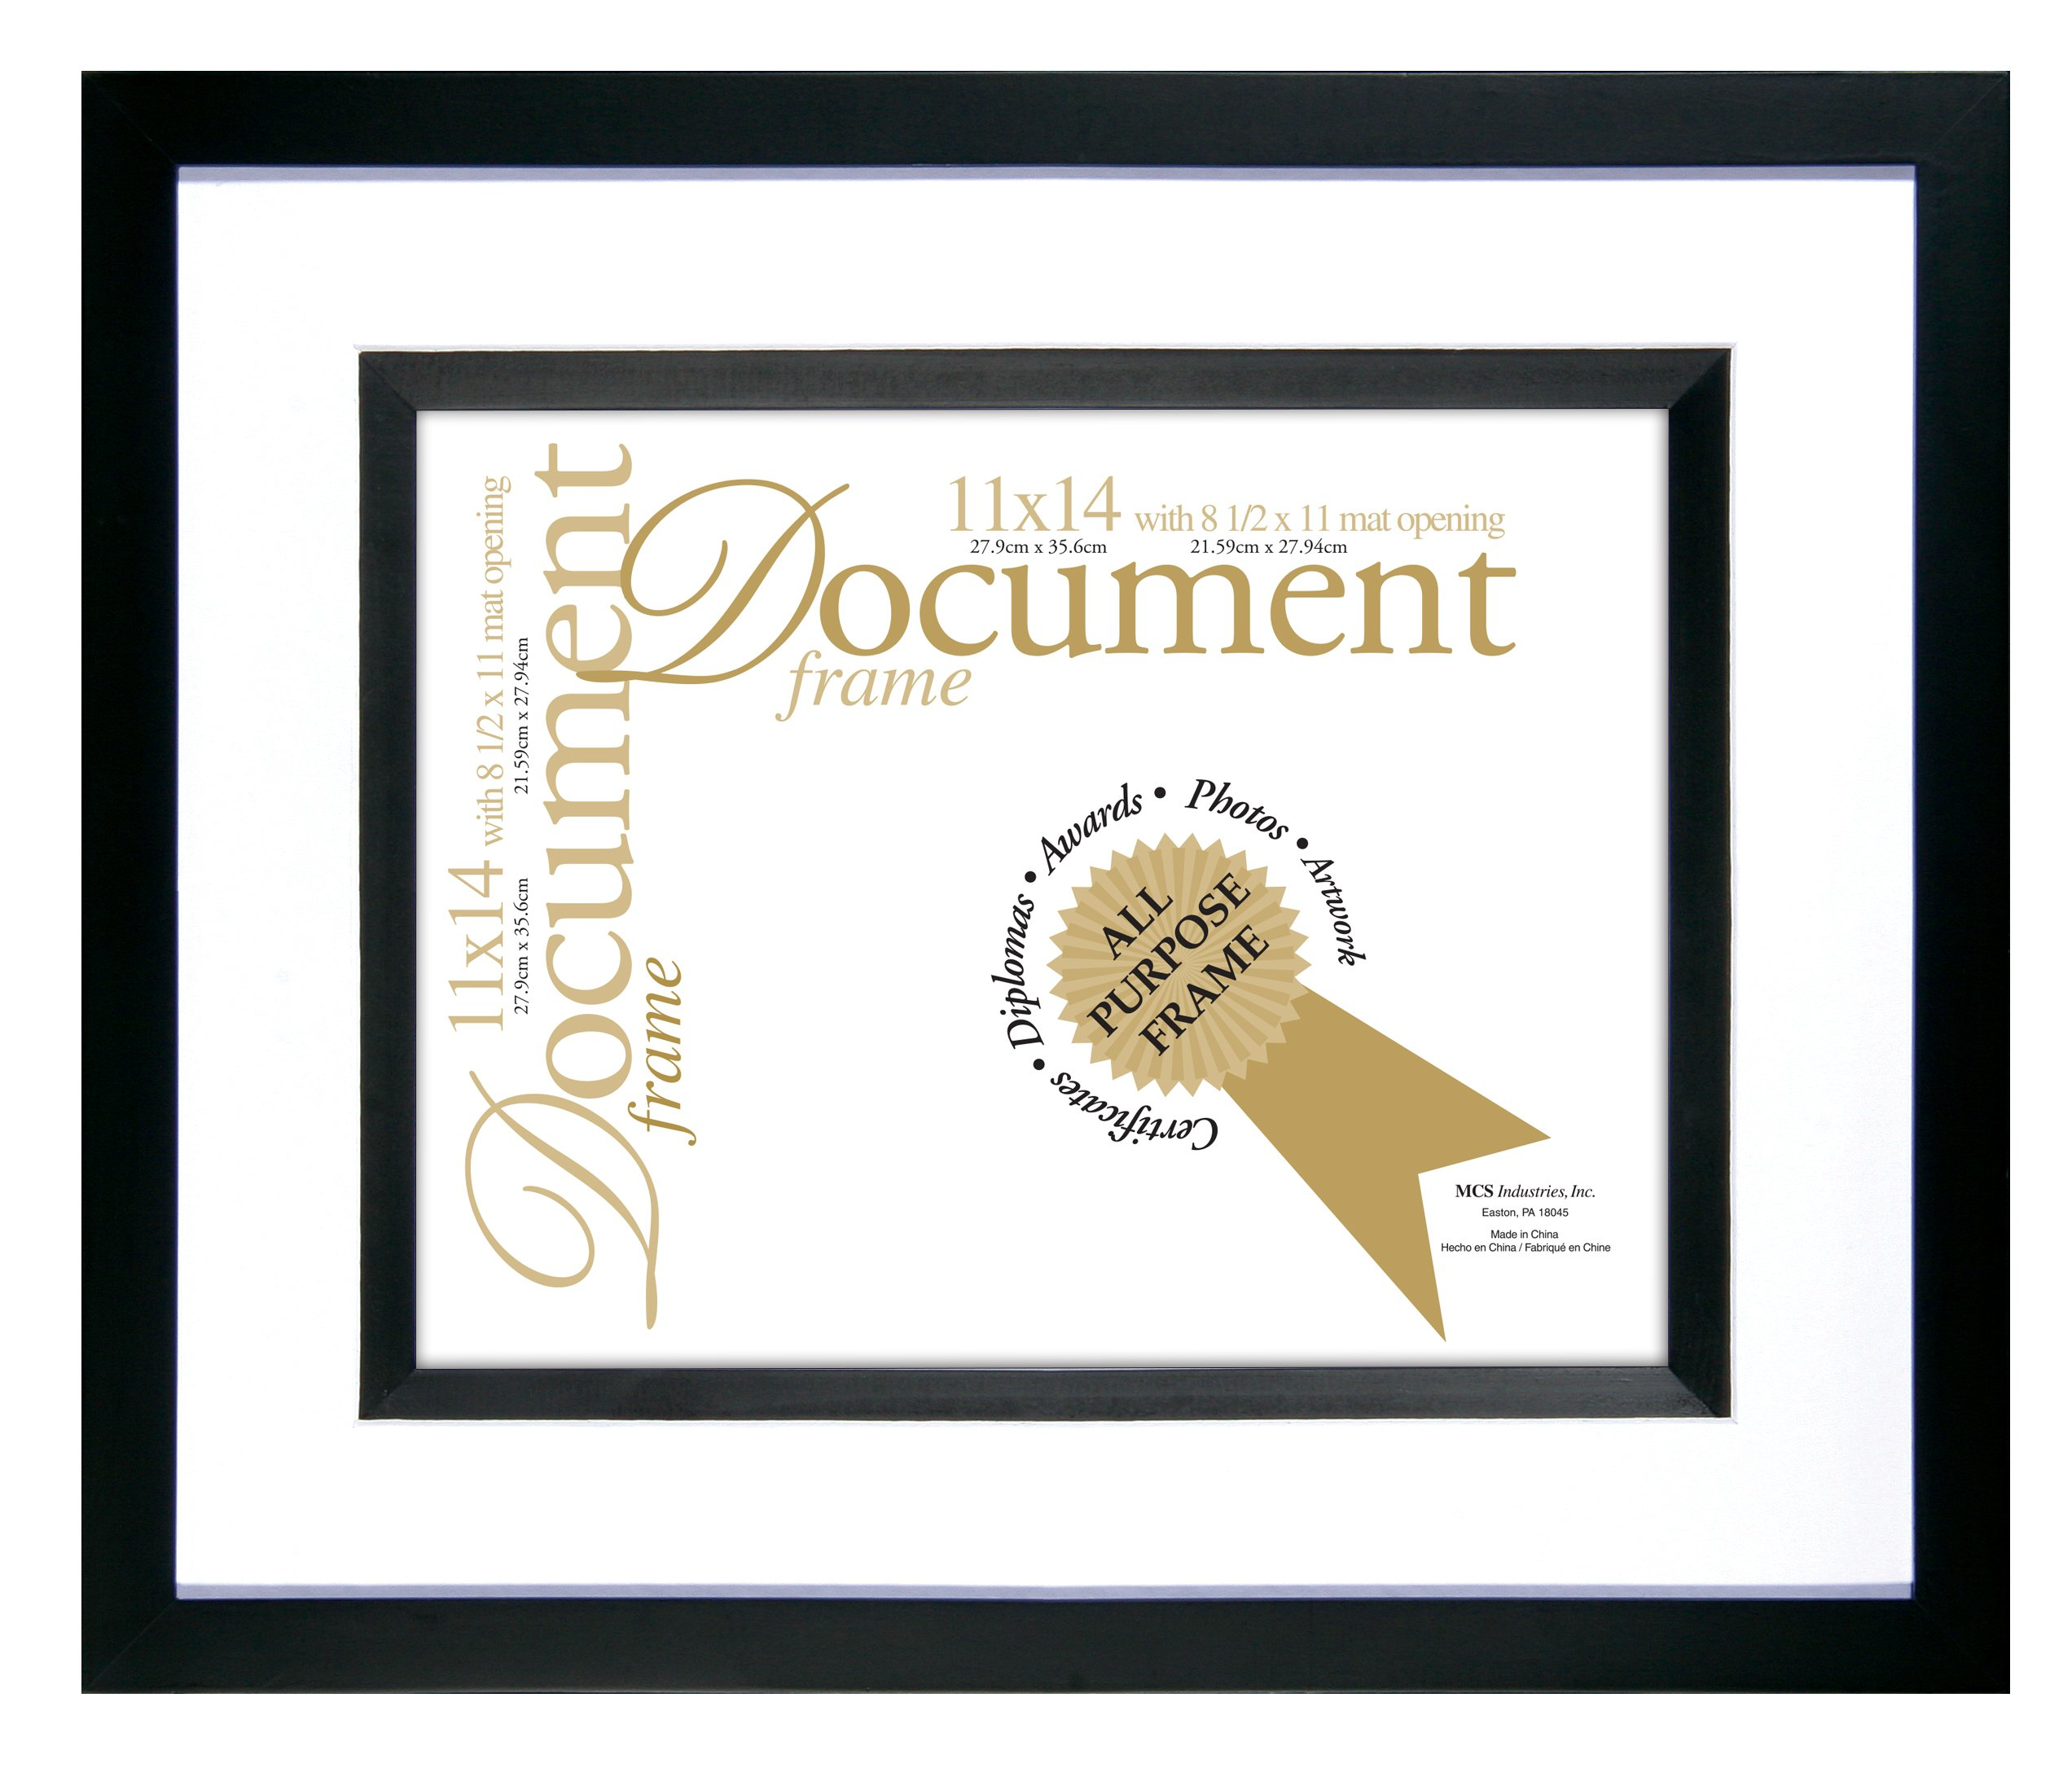 MCS 11x14 Inch Silhouette Frame with 8-1/2x11 Inch Opening for Documents, Black (69964)